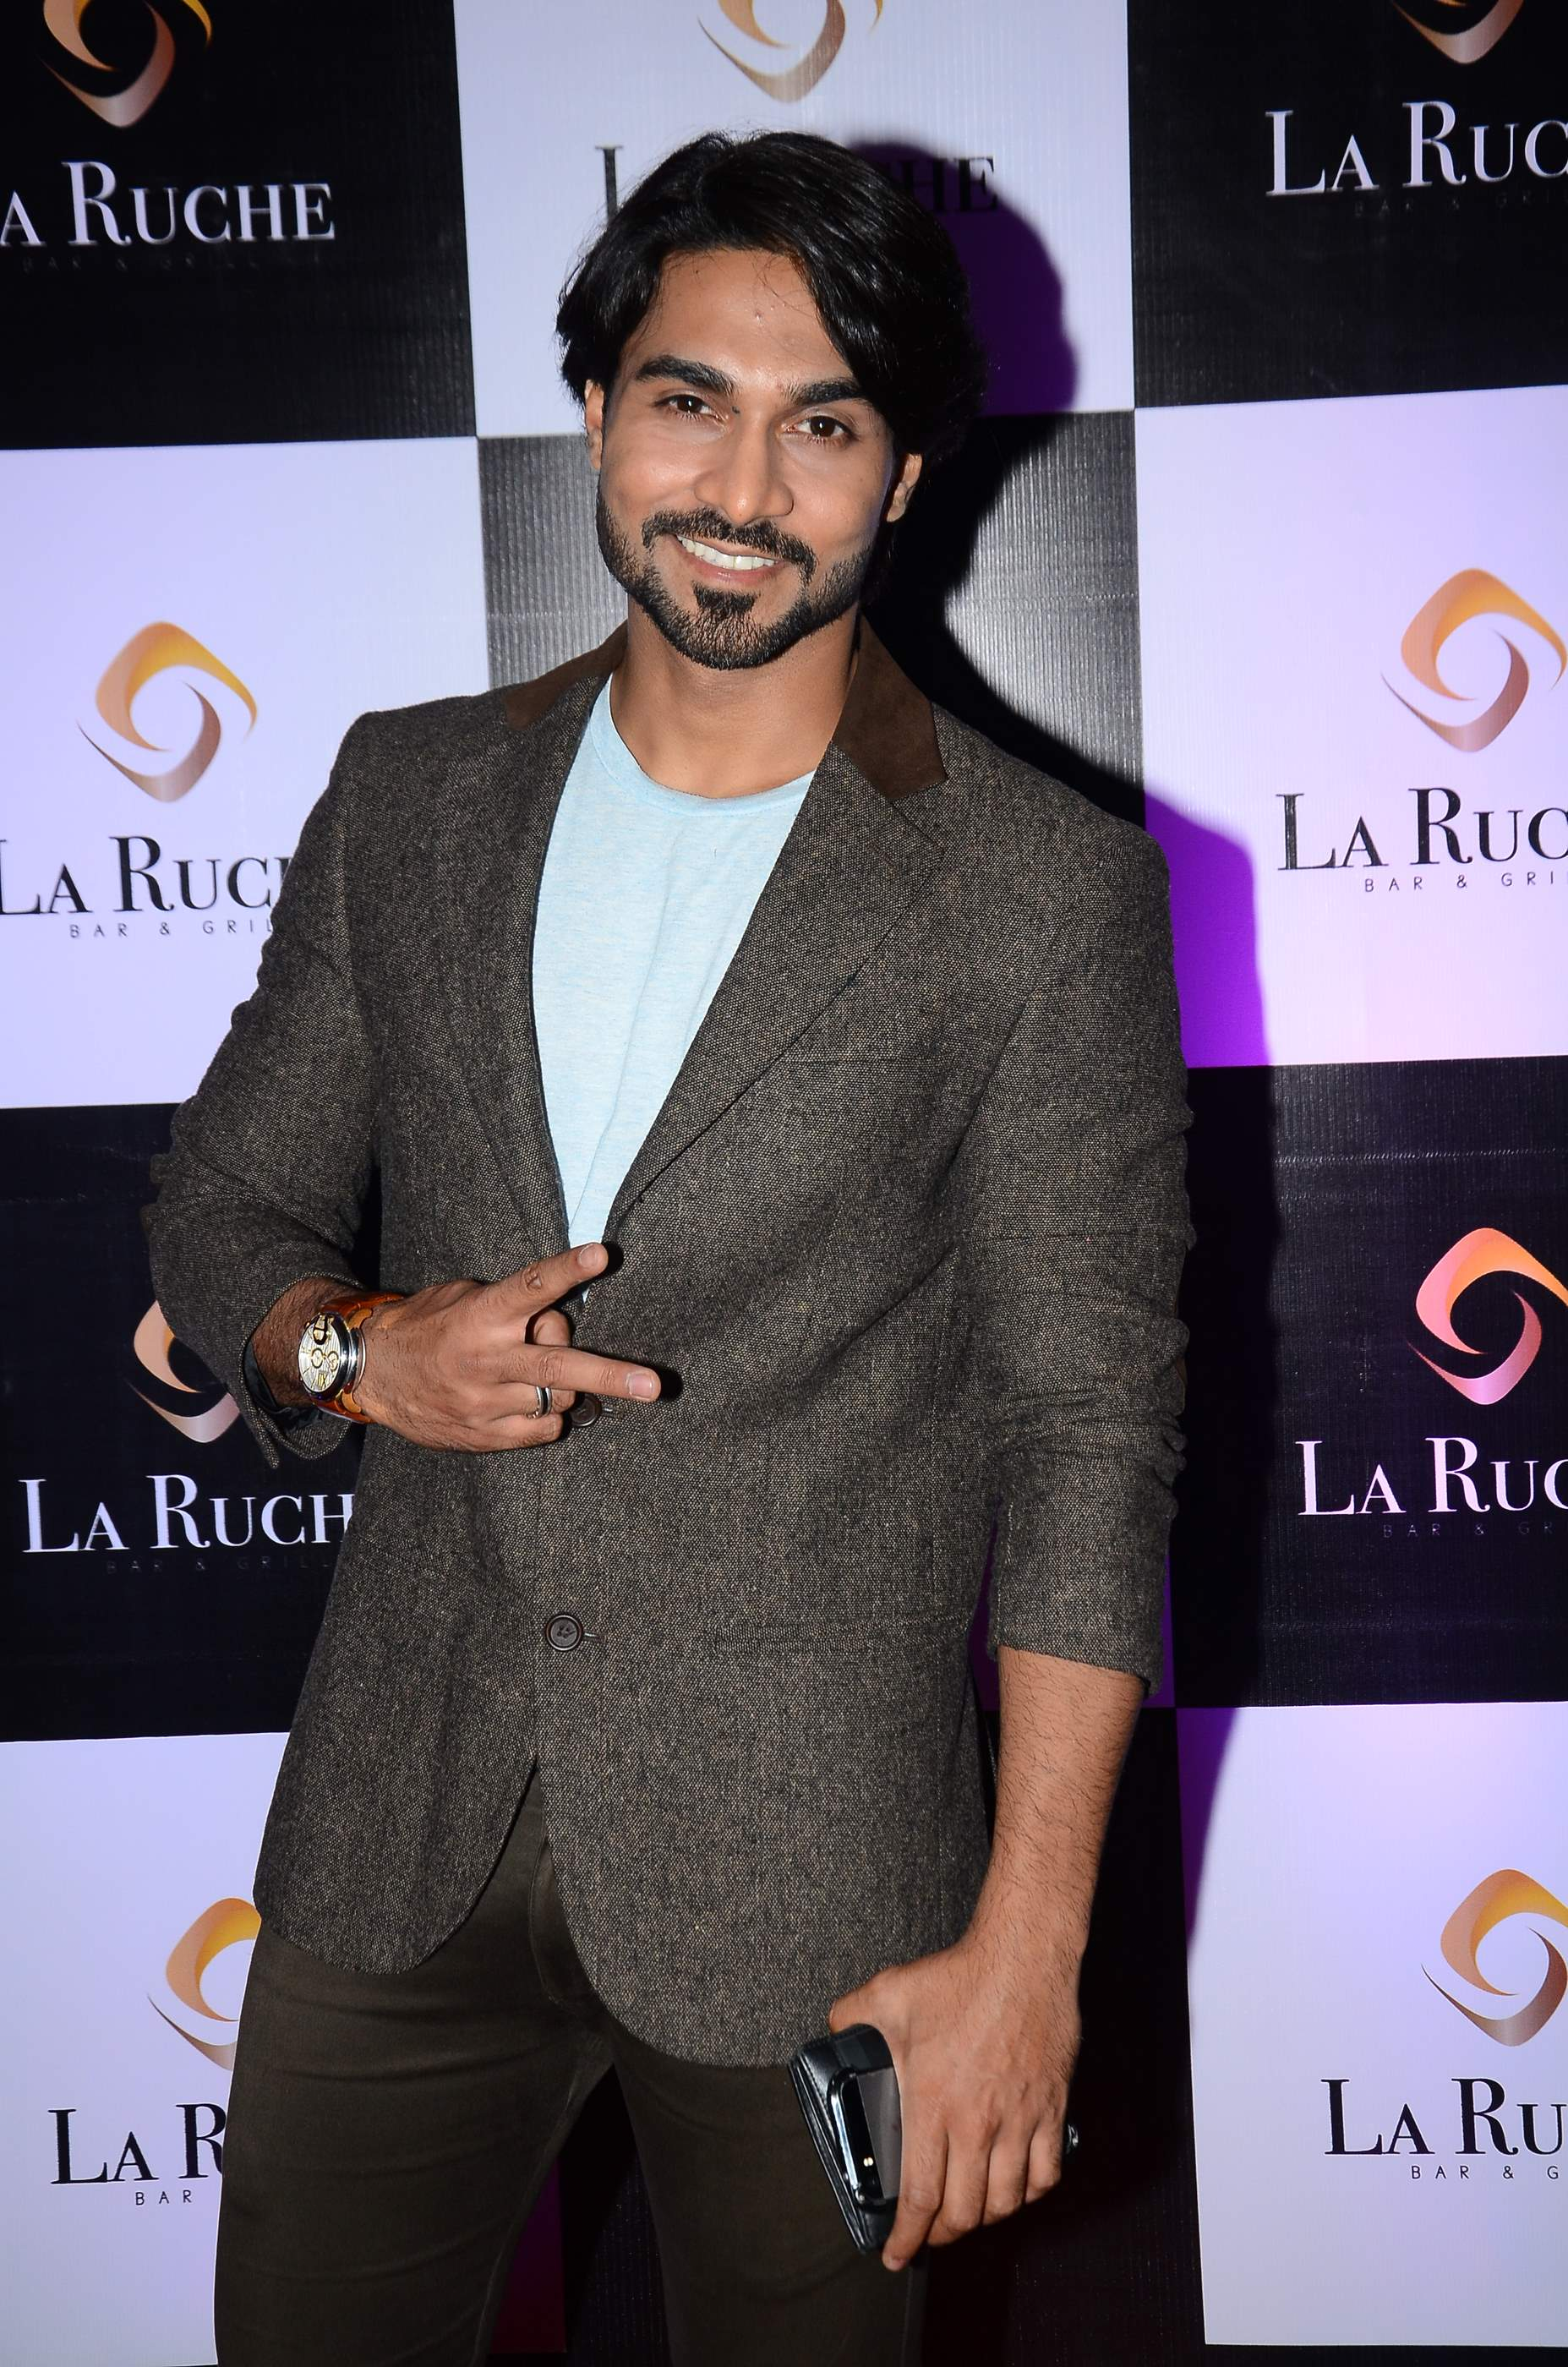 Bollywood Celebs Attended La Ruche Bar & Grill Opening Event at Bandra in Mumbai